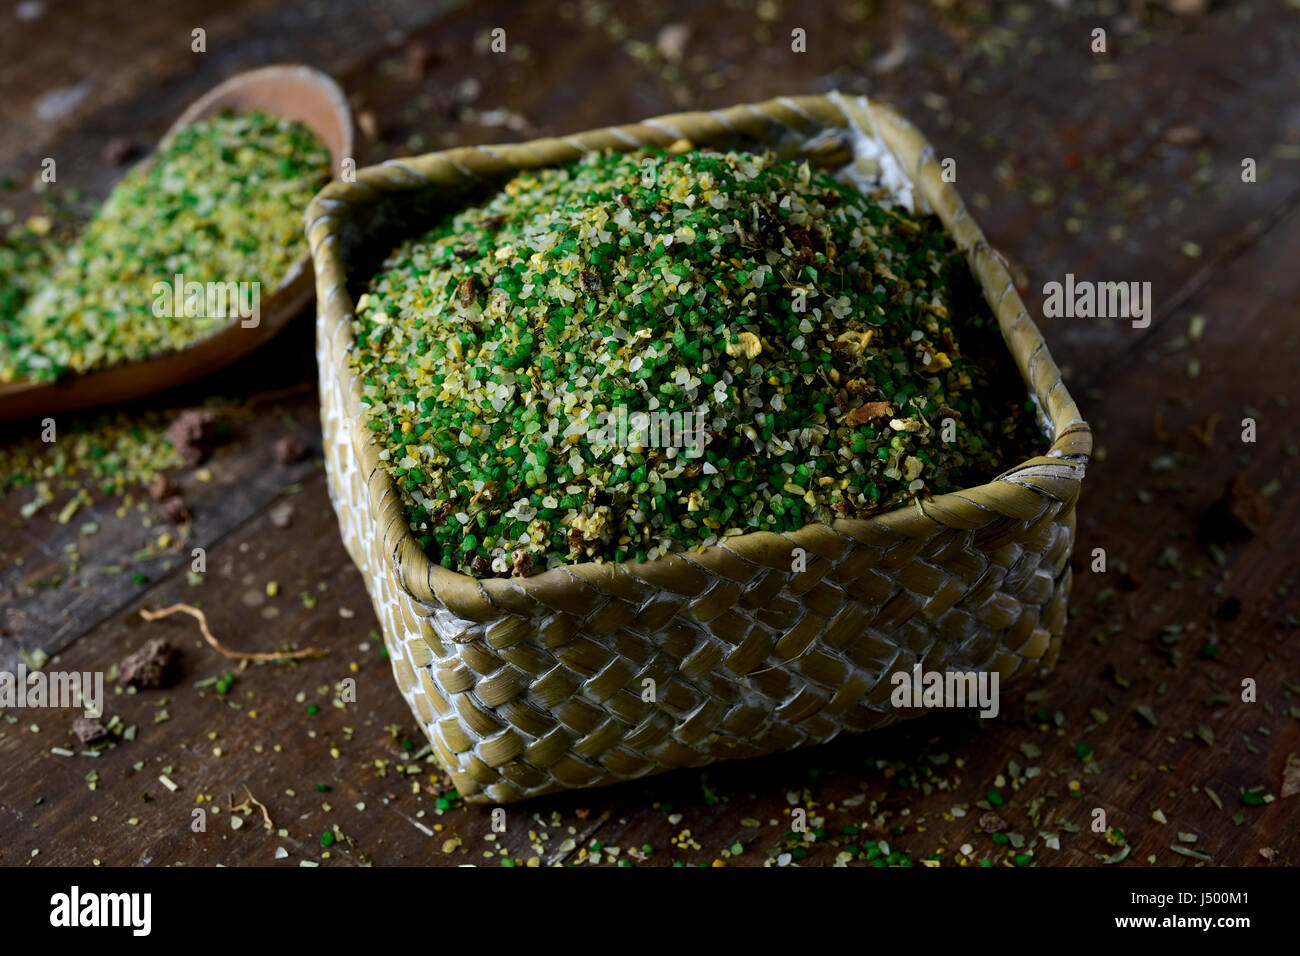 closeup of a square basket and a wooden spoon full of vegetable soup mix with semolina, on a rustic wooden table - Stock Image